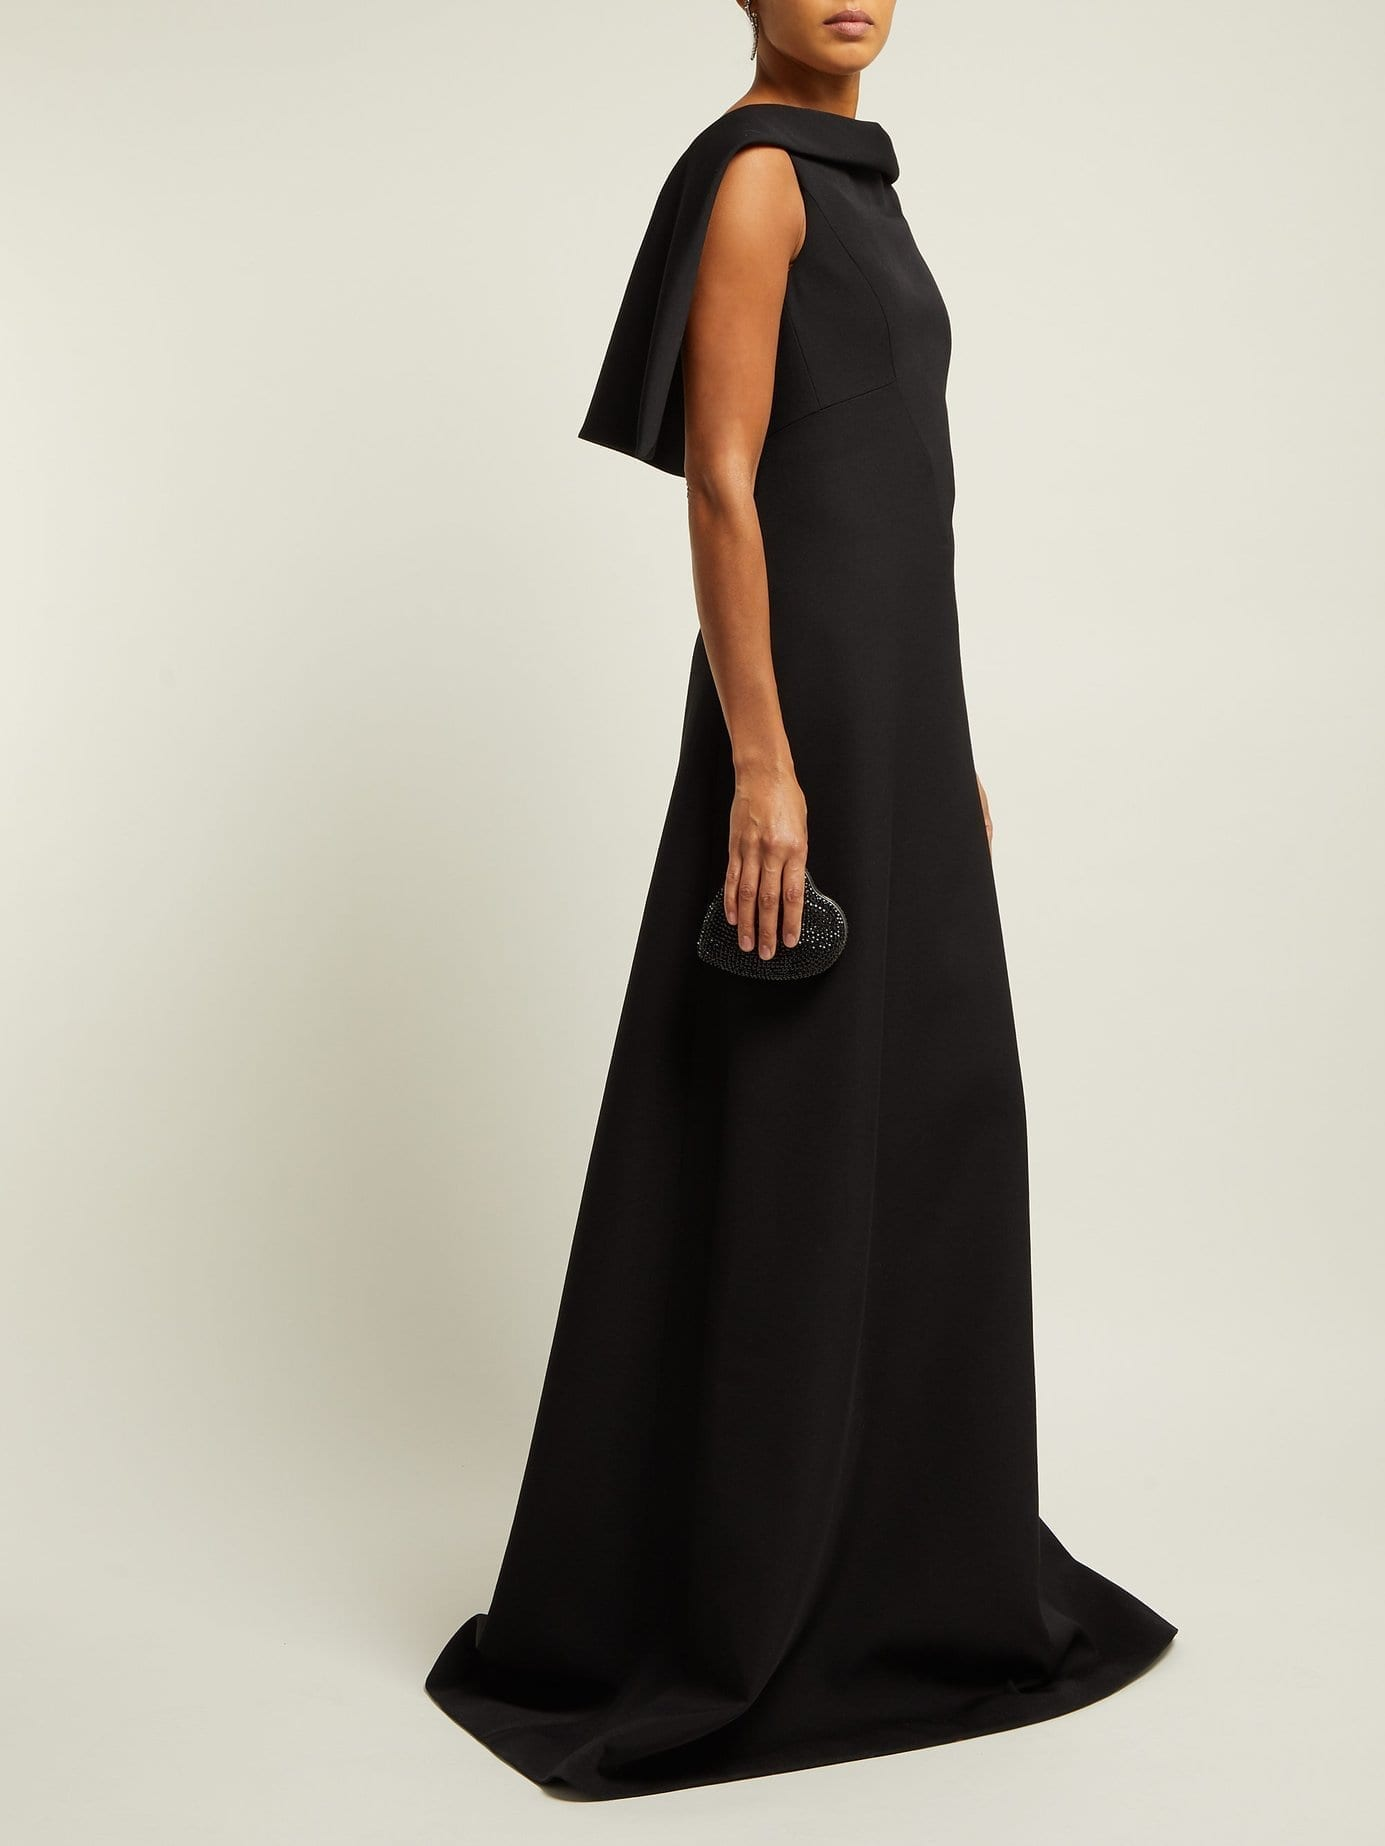 GIVENCHY Cape-Shoulder Wool-Crepe Black Gown